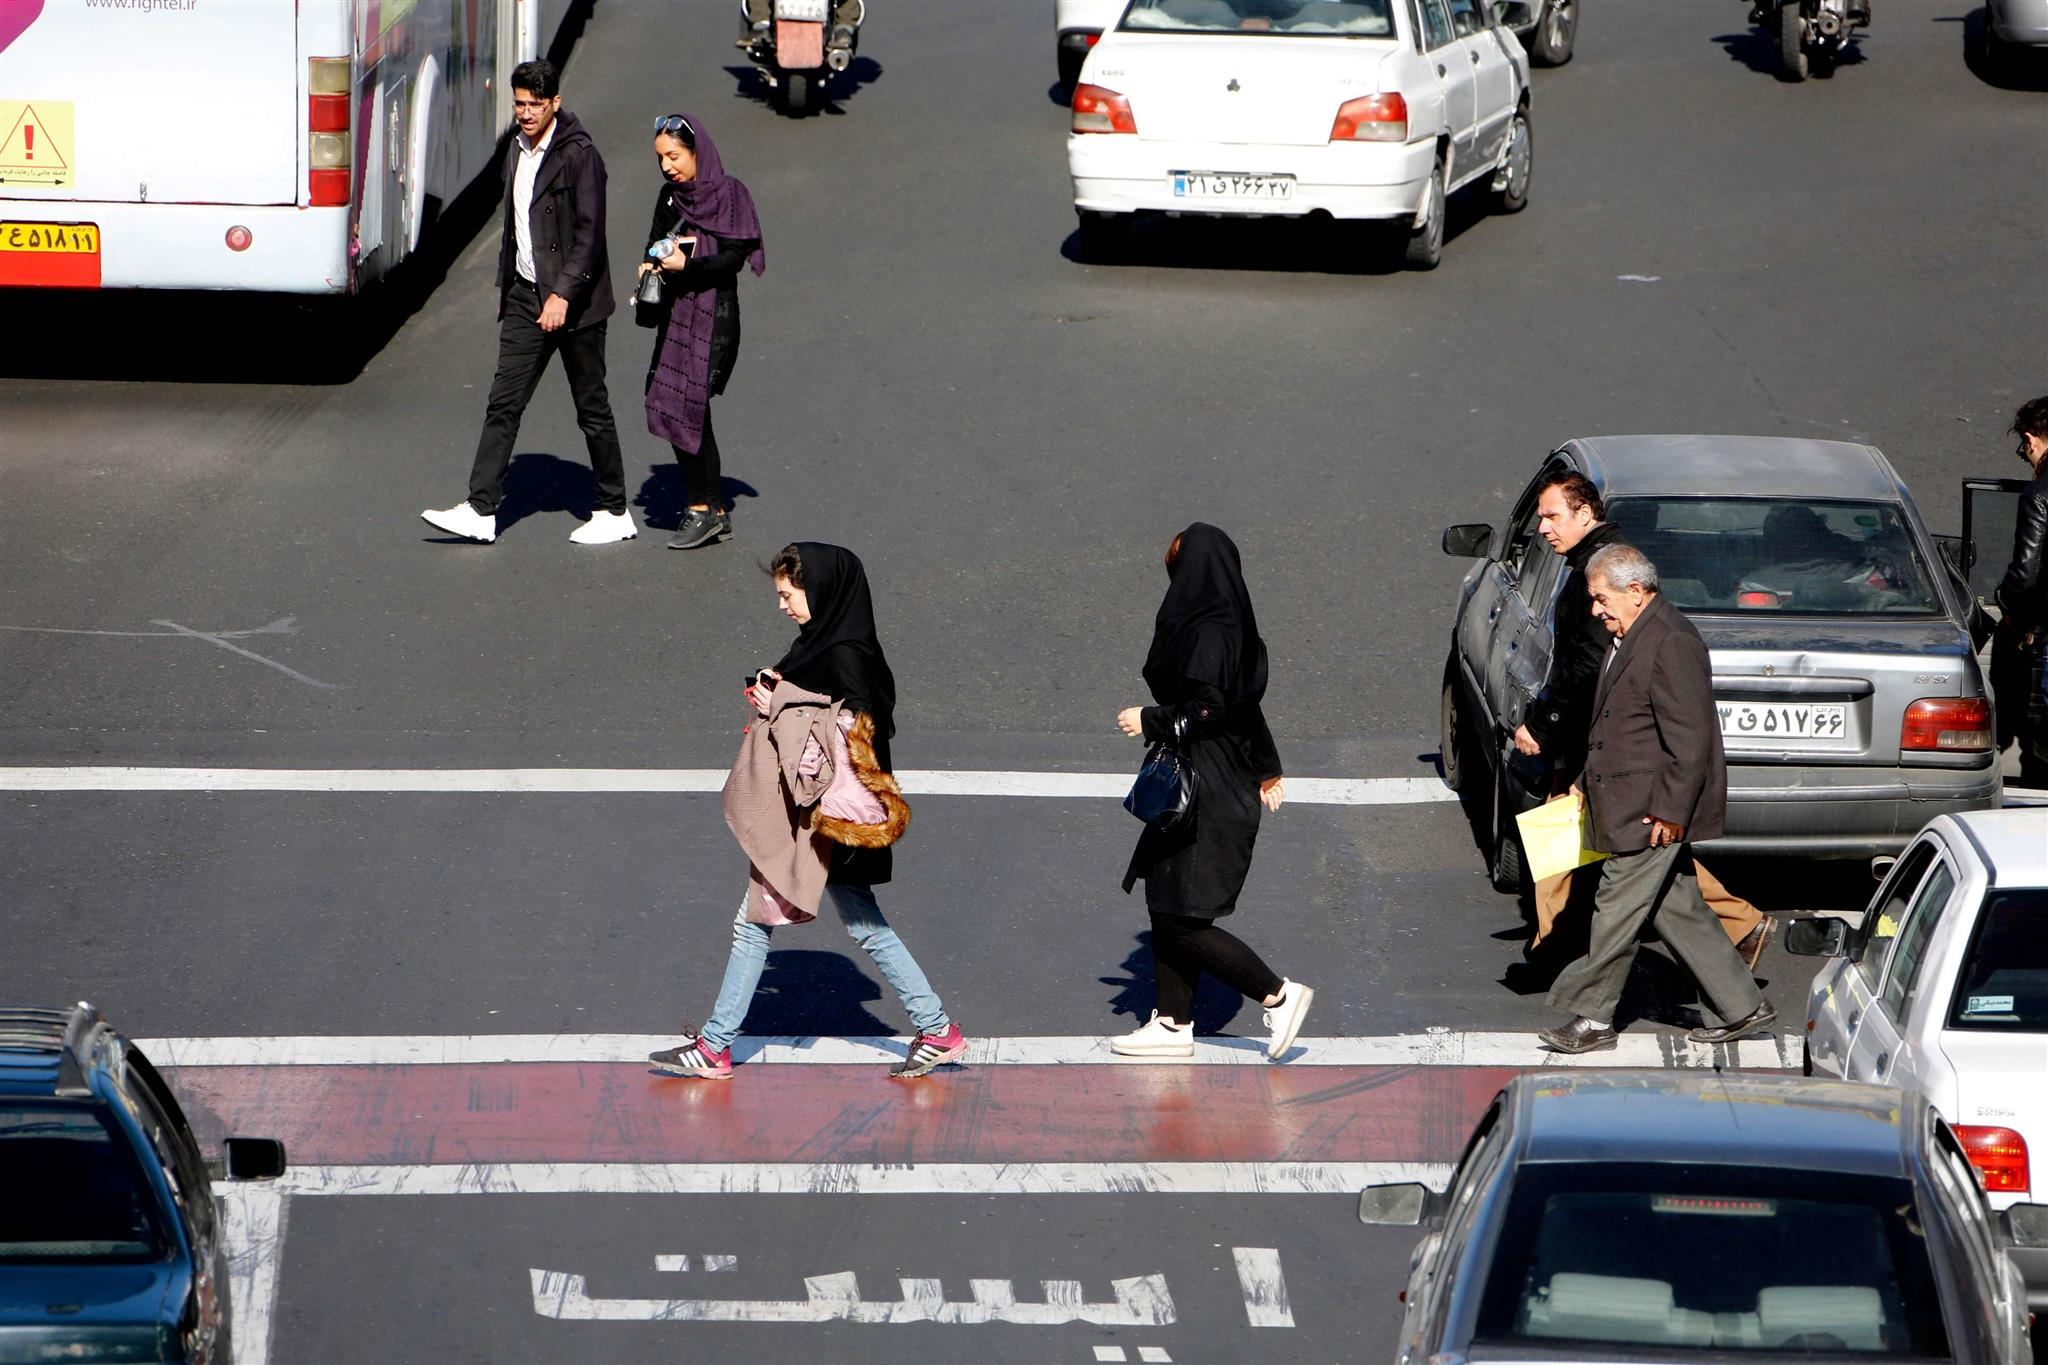 Iranians cross the road in Sadeqyeh Square in Tehran. (AFP)